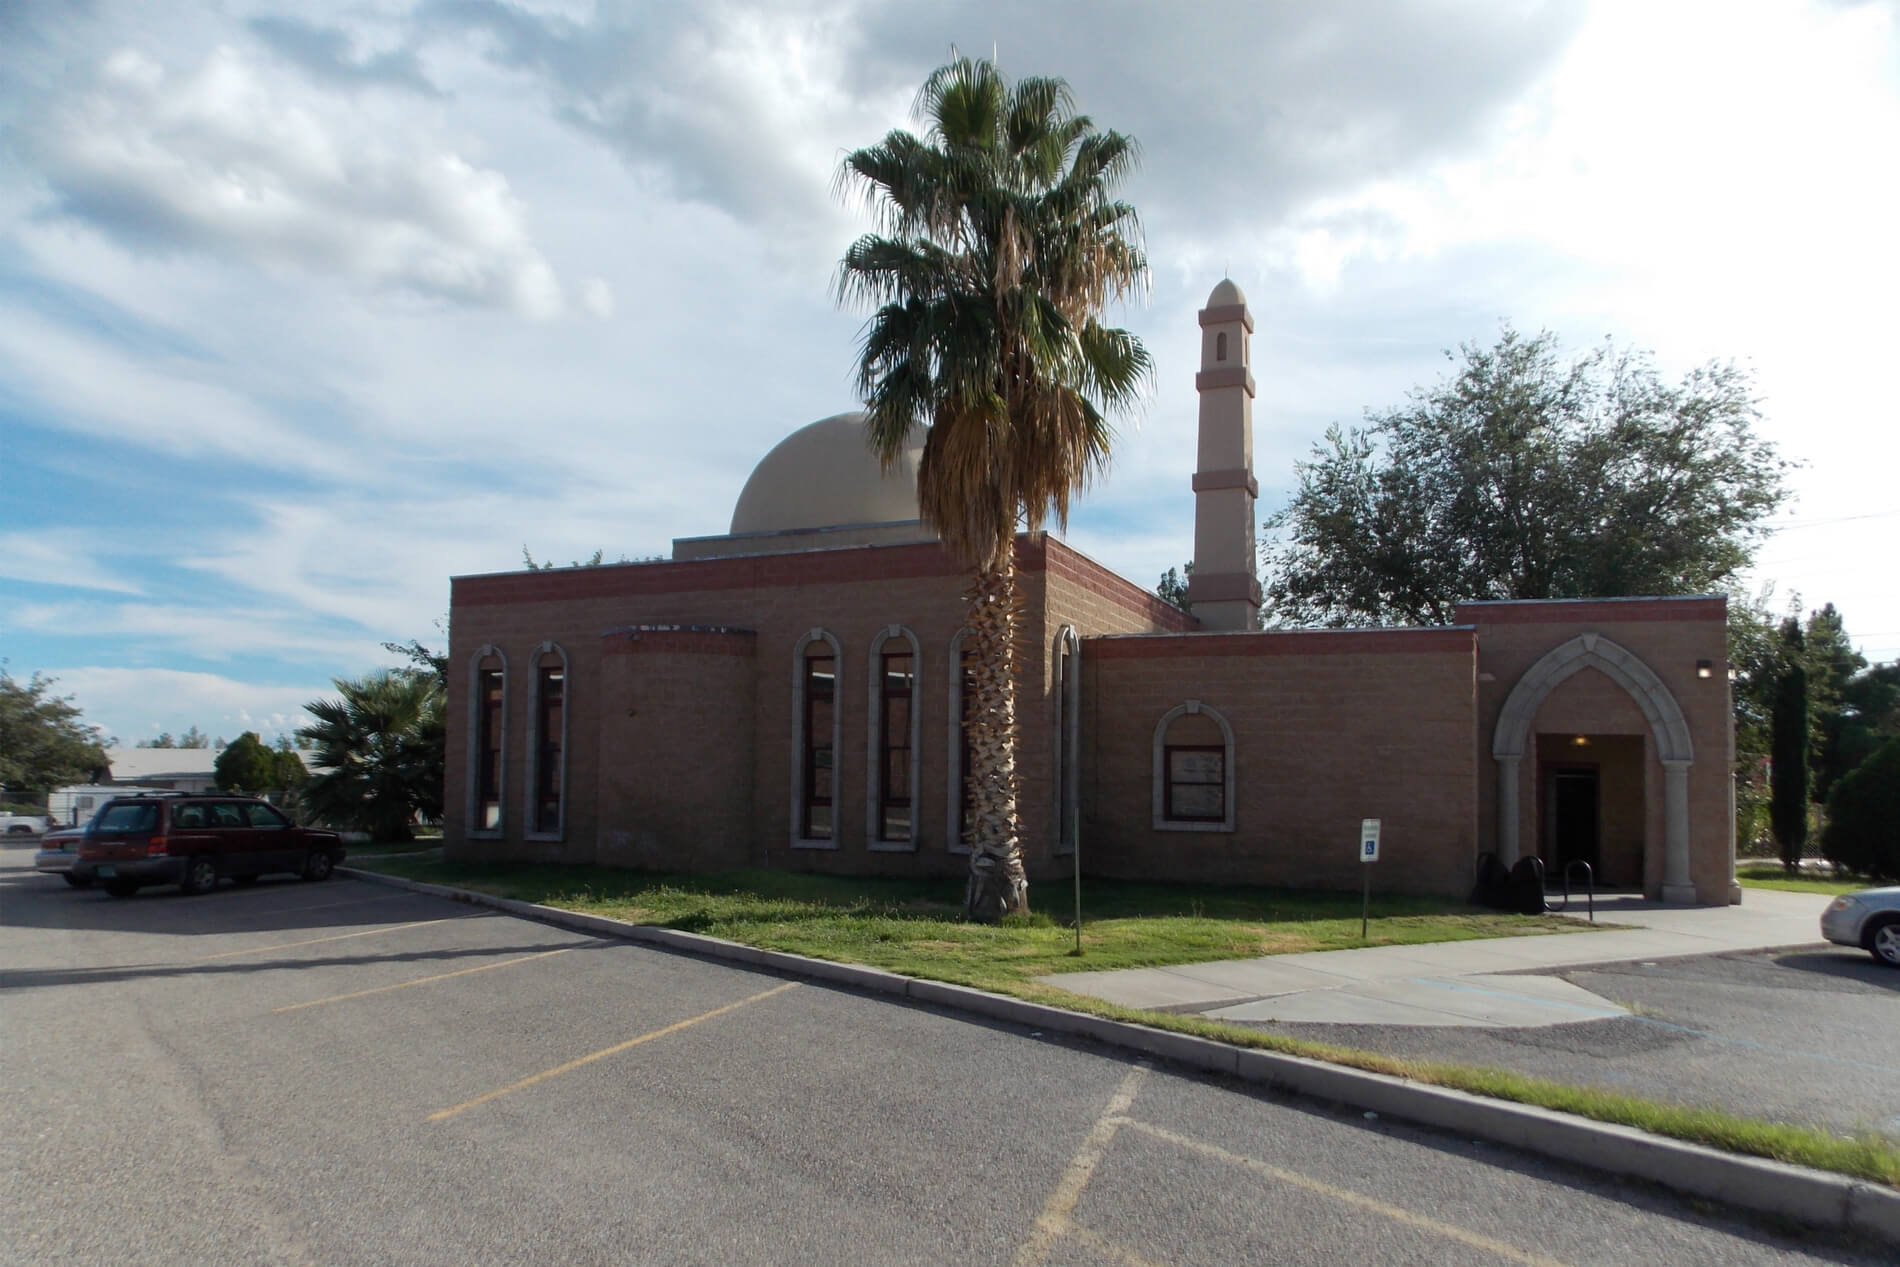 The Islamic Center of Las Cruces